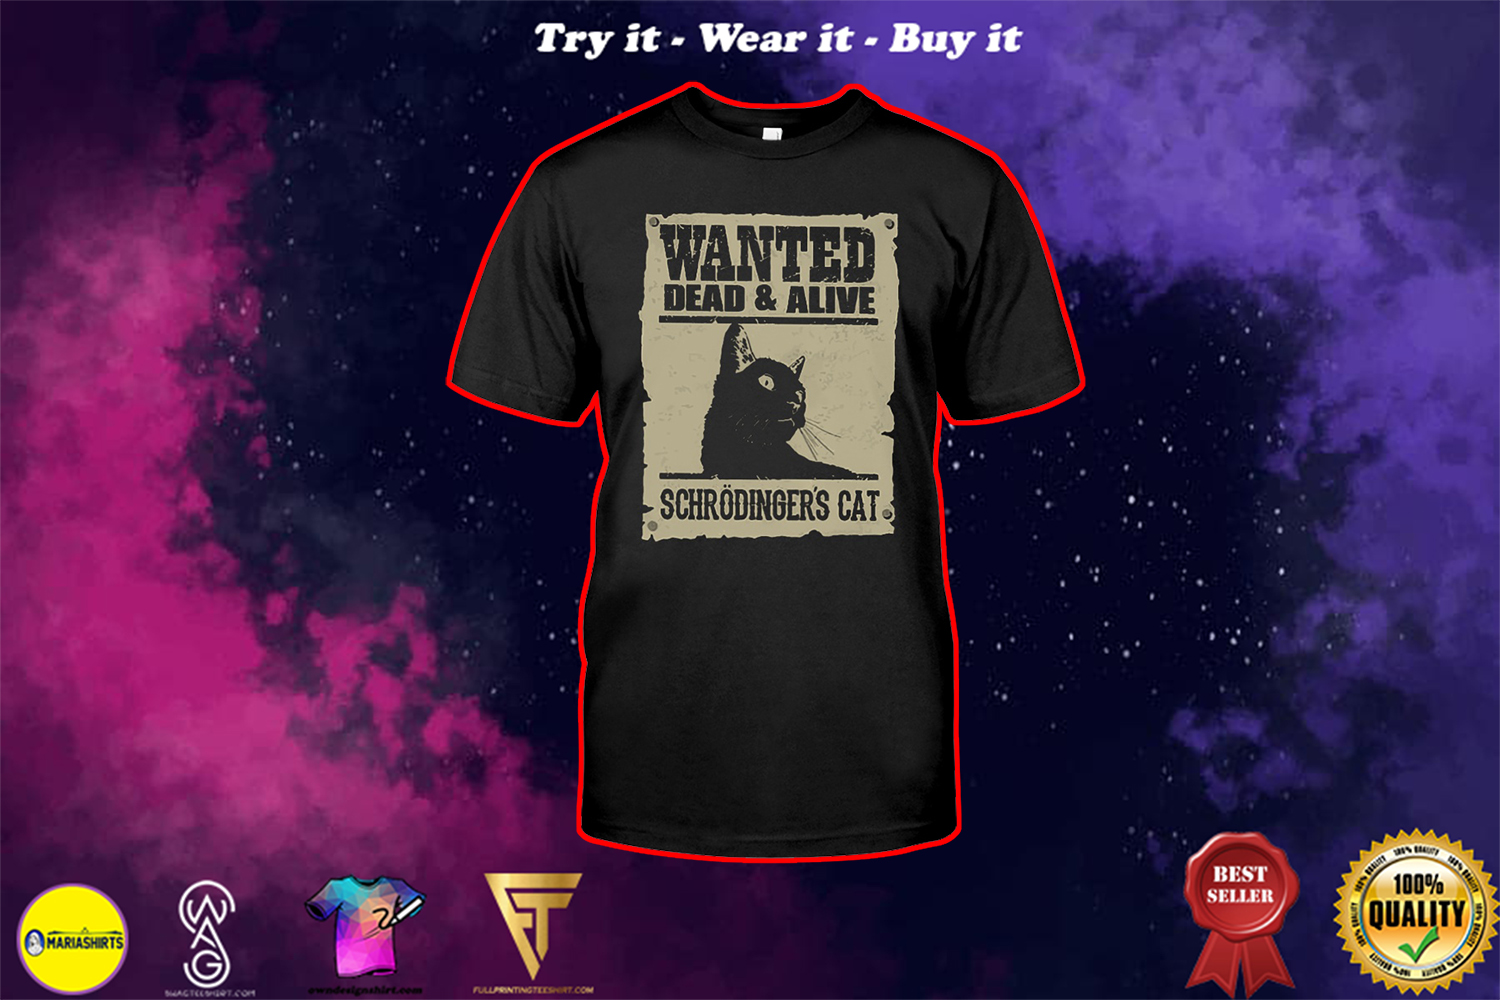 wanted dead and alive schroedingers cat shirt